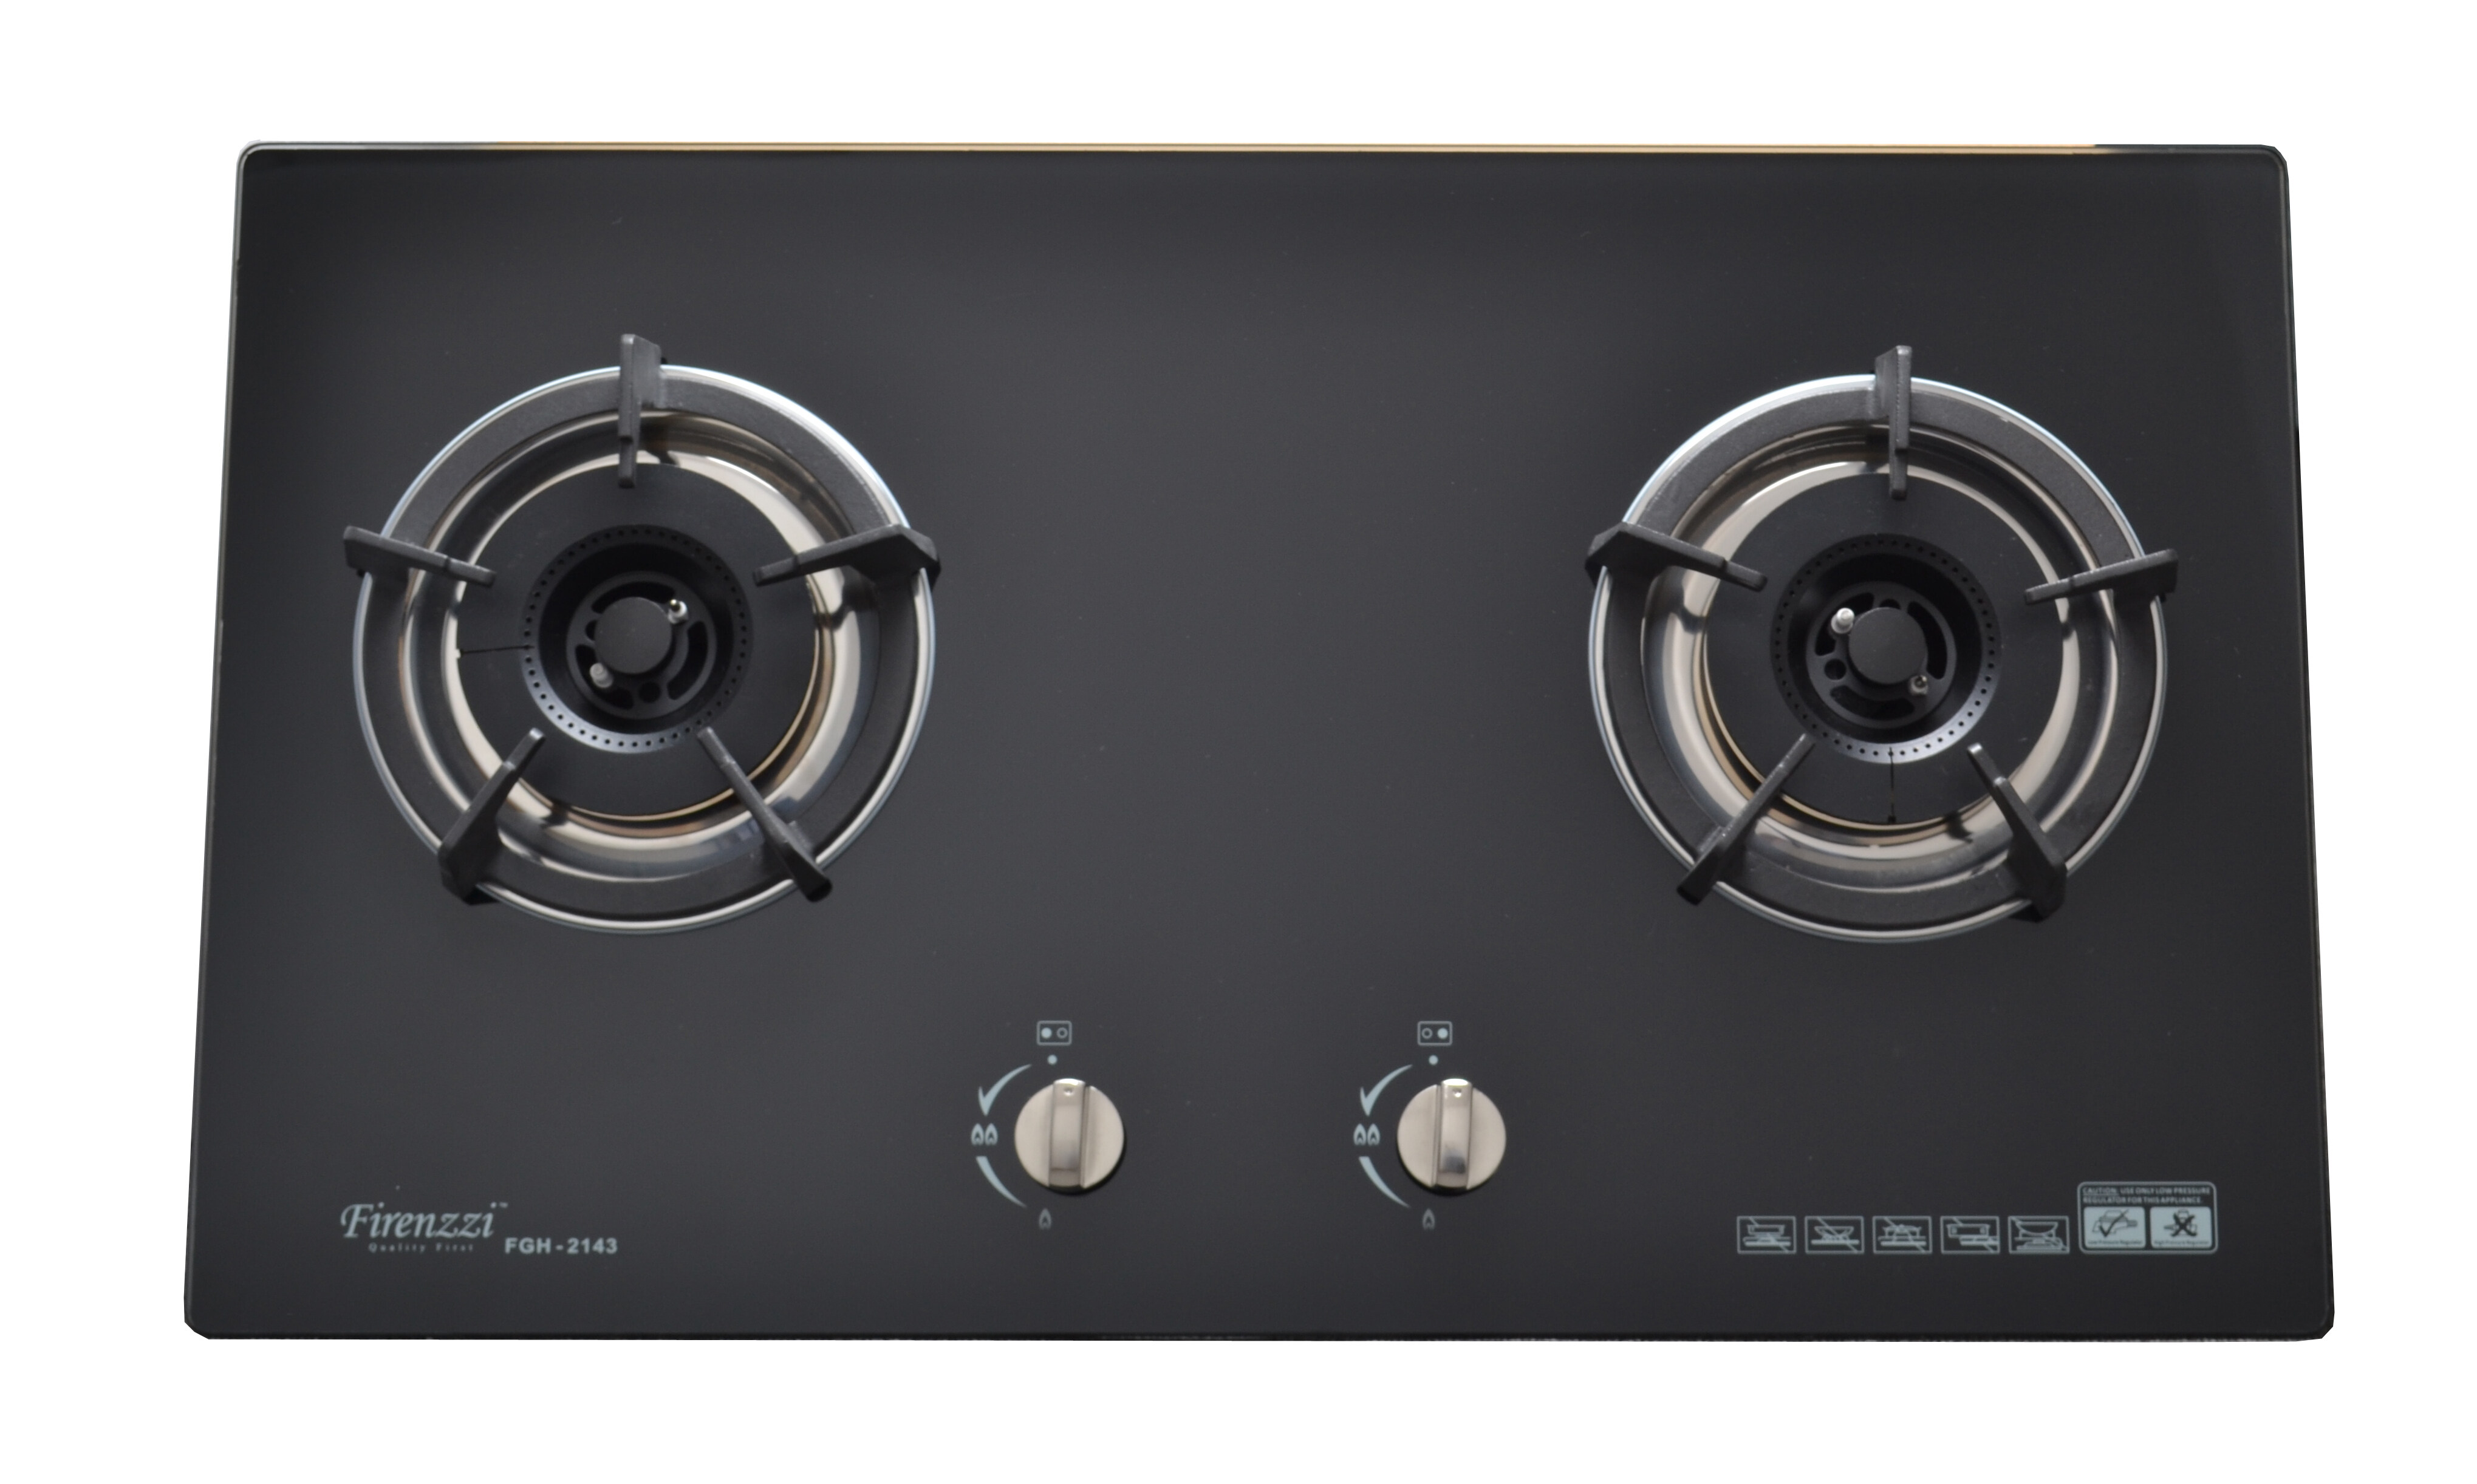 Firenzzi FGH-2043 Tempered Glass Hob with 1 Year Warranty (2 Triple Ring Burners with 4.8 Kw Power Flame)